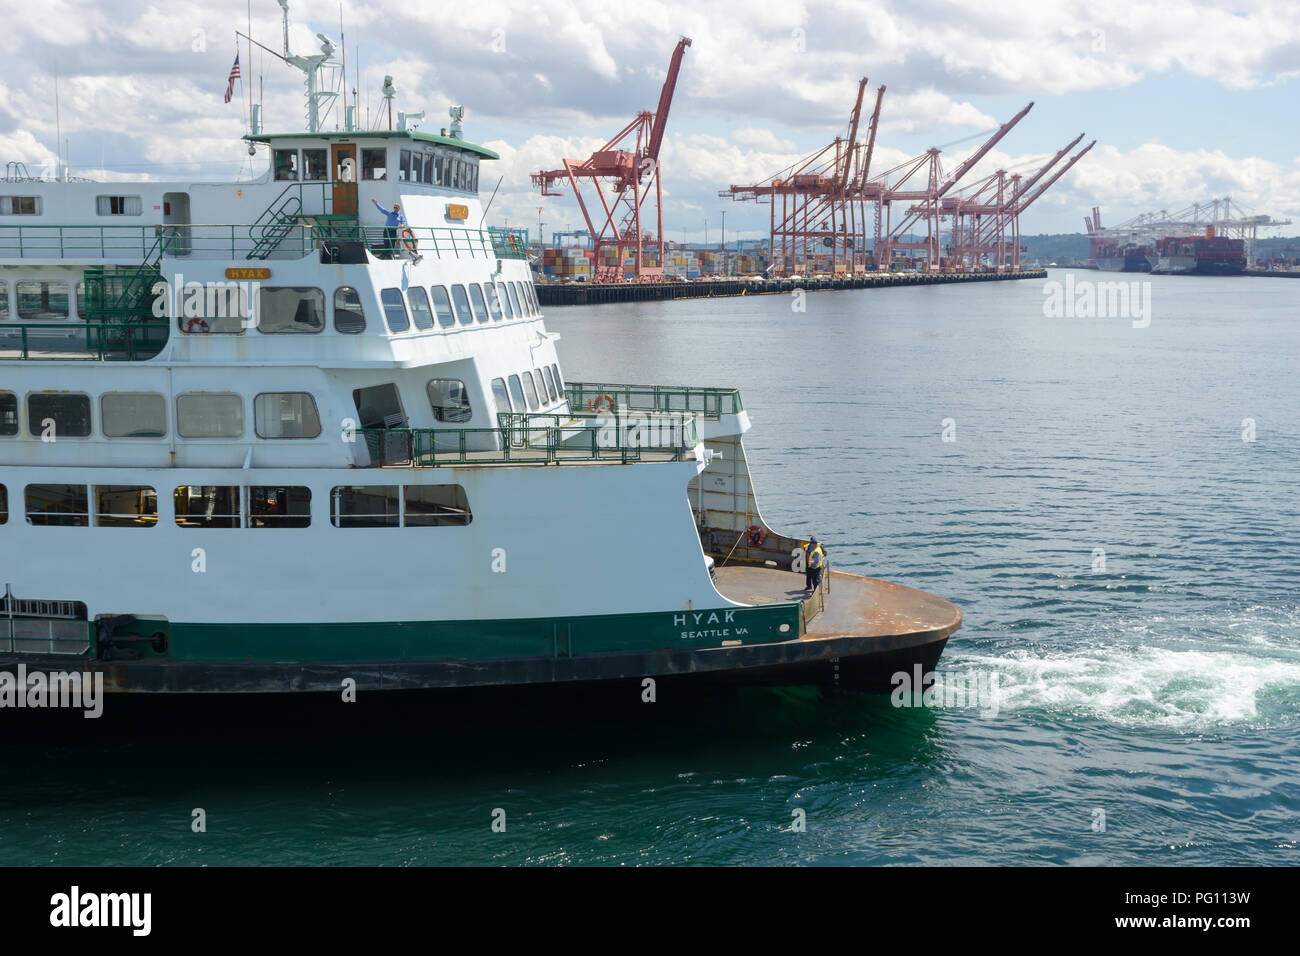 Washington State ferry boat leaving the Seattle Terminal with the cranes of the Seattle harbor in the background, USA. - Stock Image